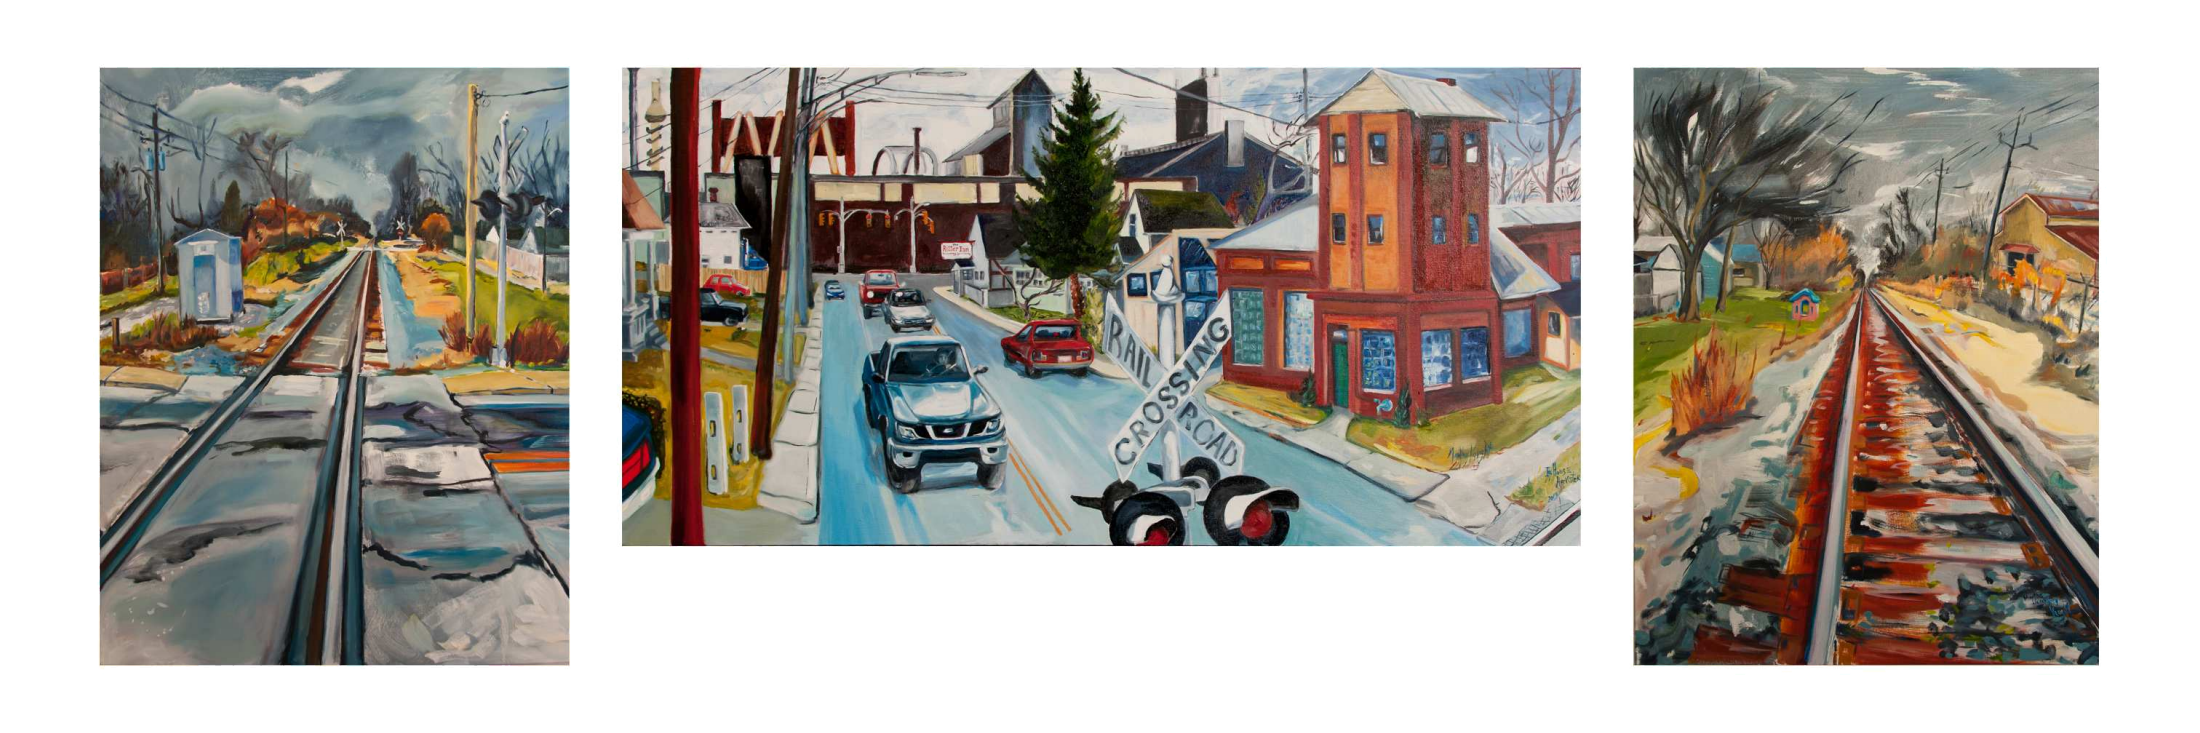 IceHouse Harvest Irvington and the B & O Rails, oil on canvas Triptych. side panels 24 x 30, center 24 x 48, 2014 by Martha Lindenborg Vaught